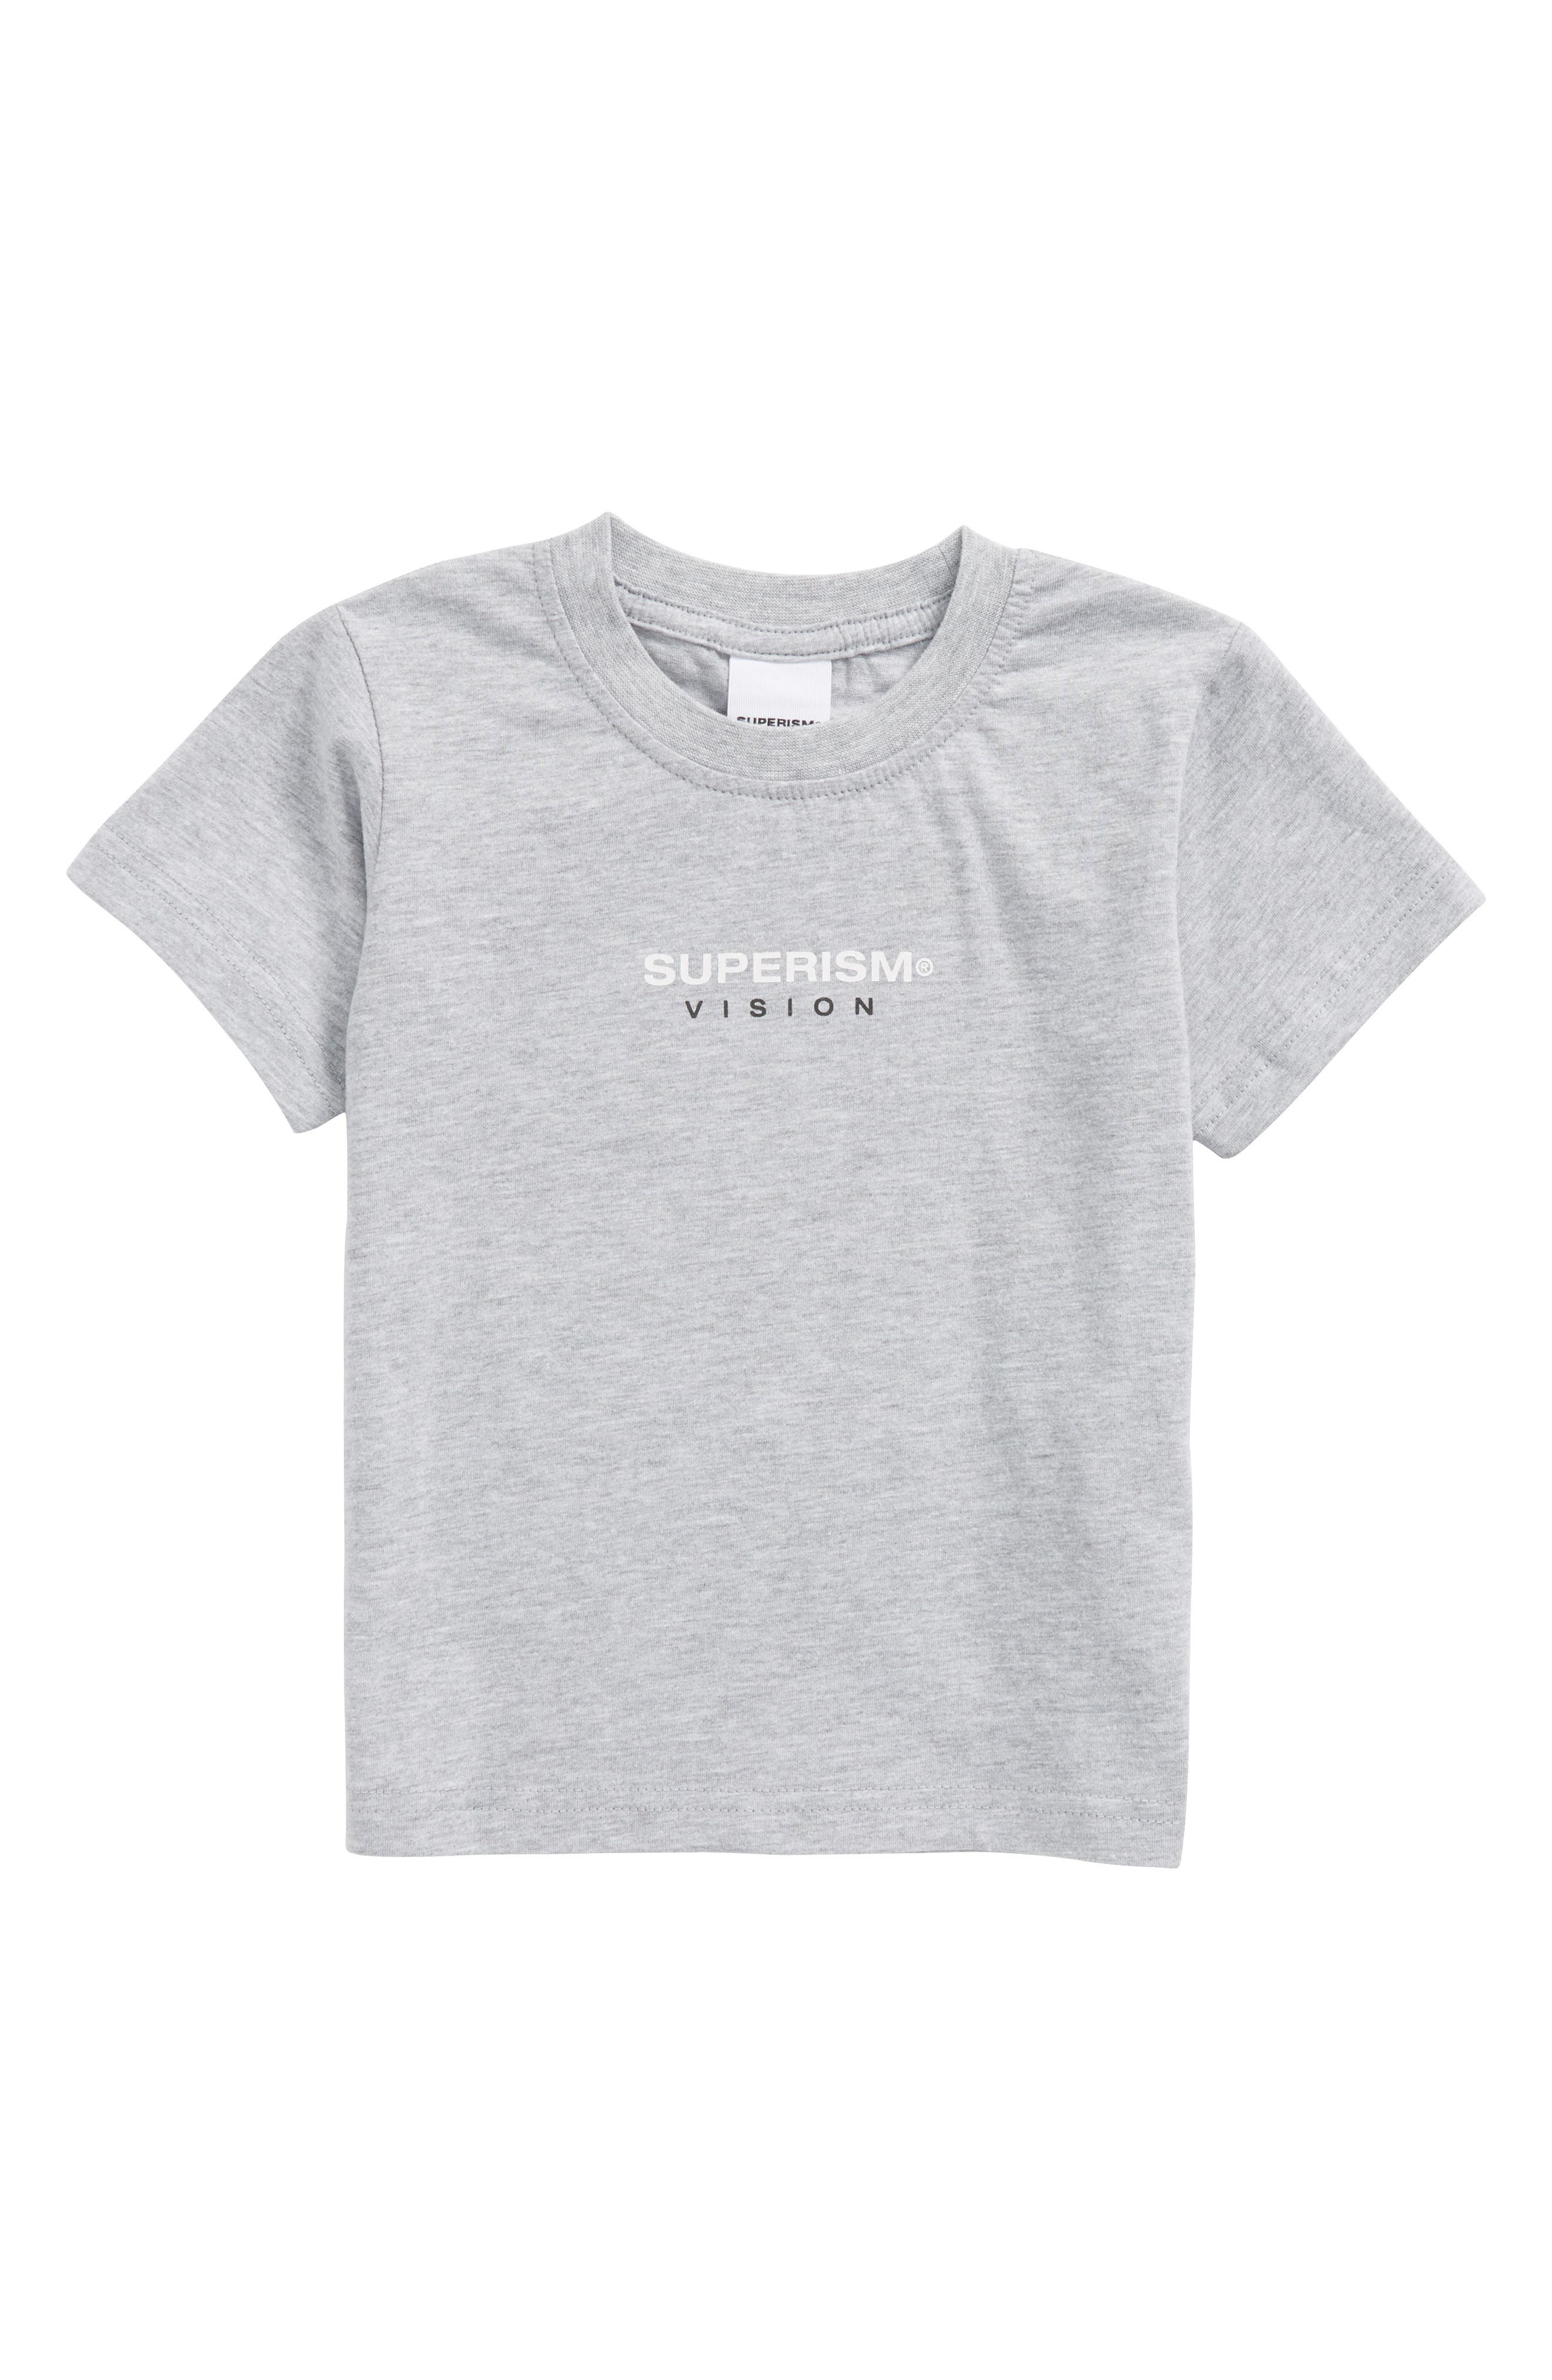 Rose Vision T-Shirt,                         Main,                         color, Heather Grey